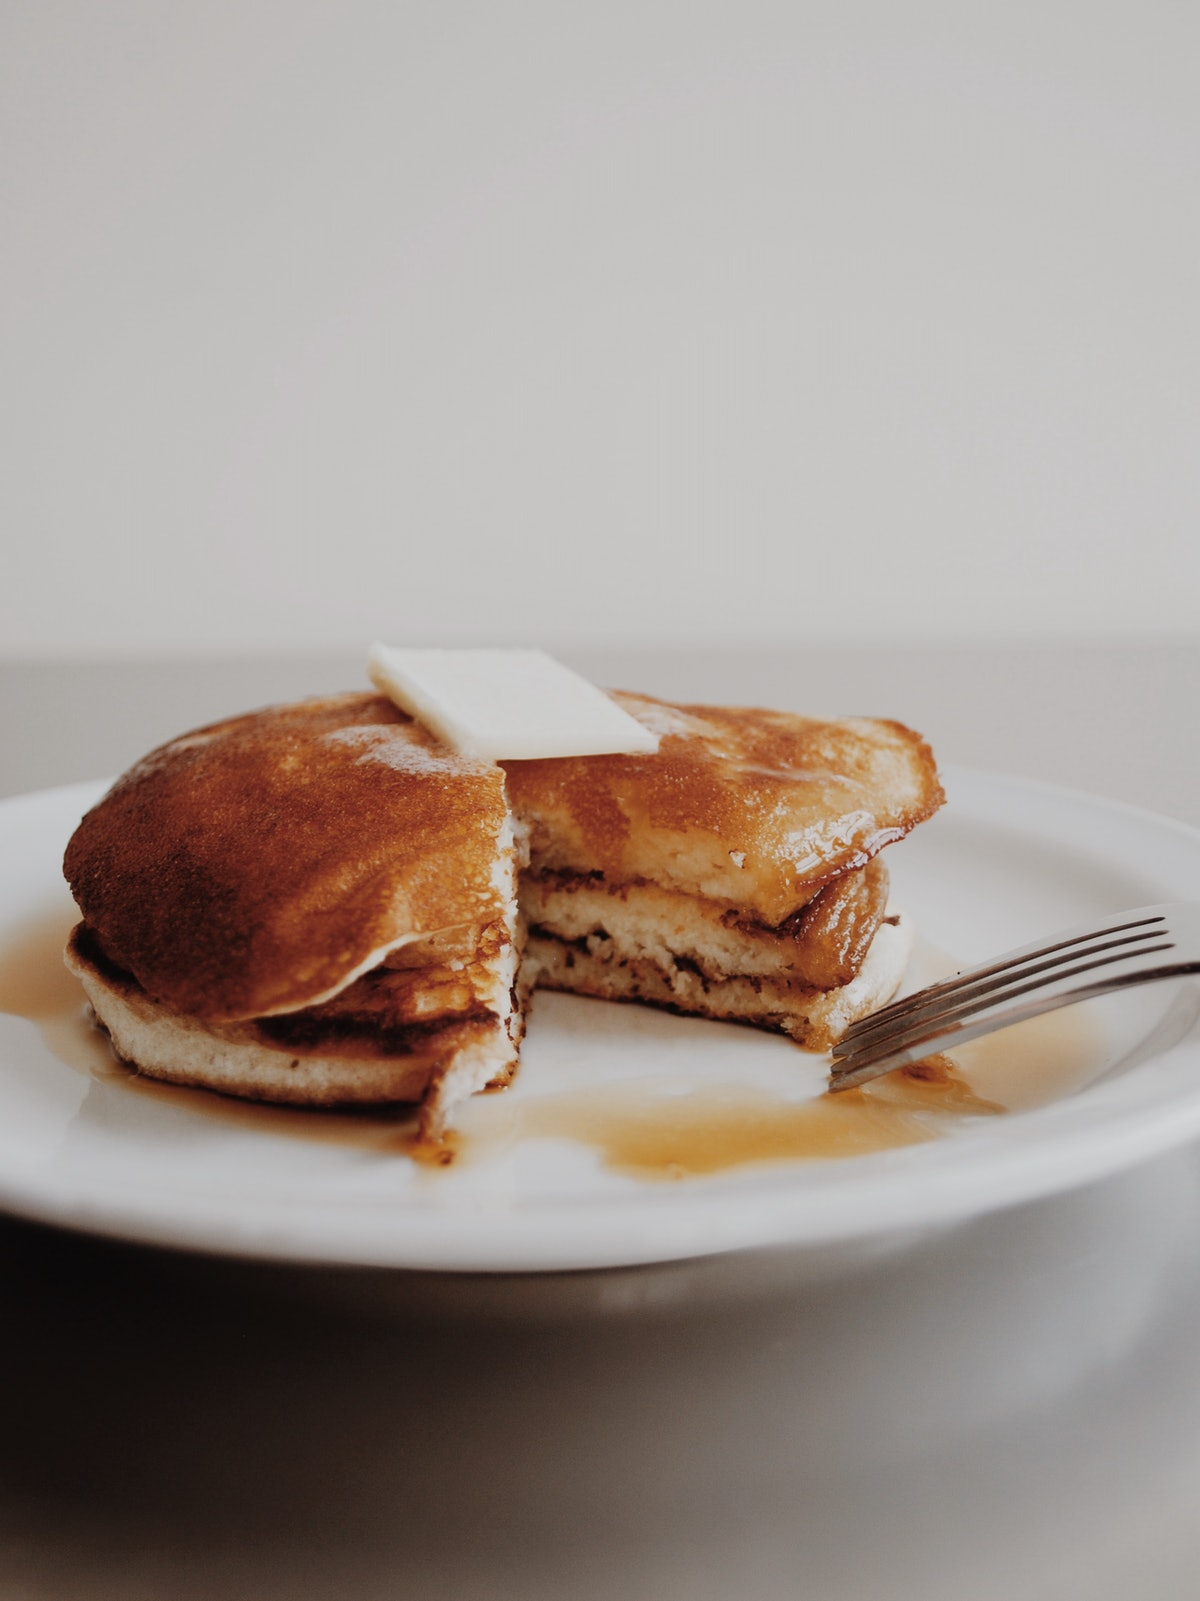 This Pancakes Recipe For One Person Will Make You Rethink Sunday Brunches